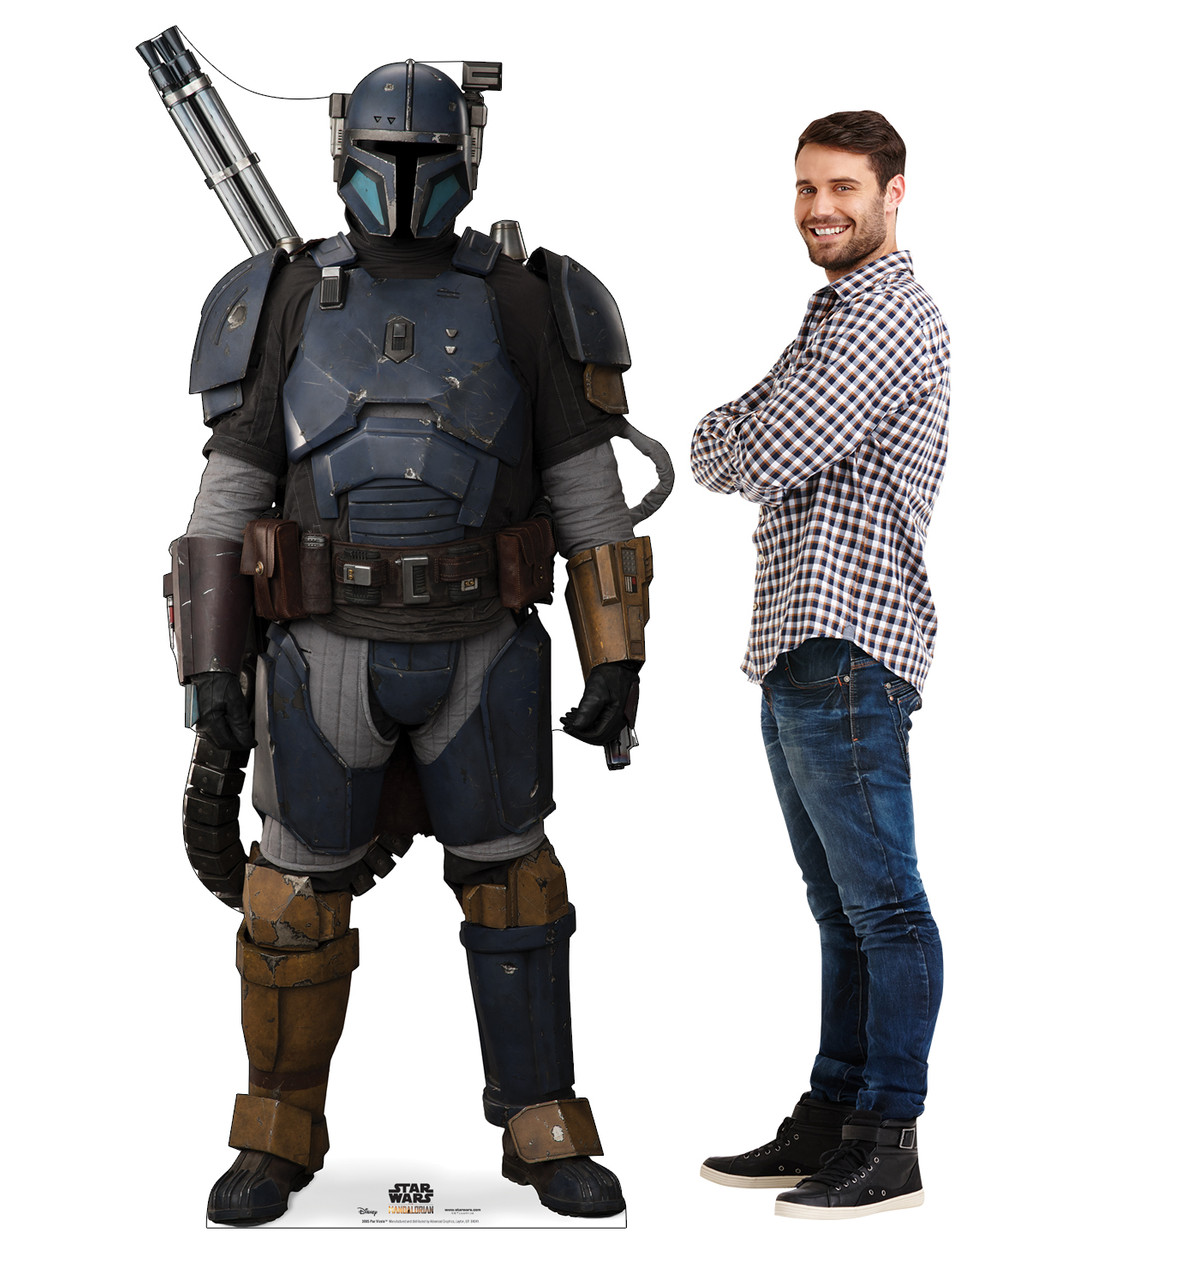 Life-size cardboard standee of Paz Vizsla from The Mandalorian with model.